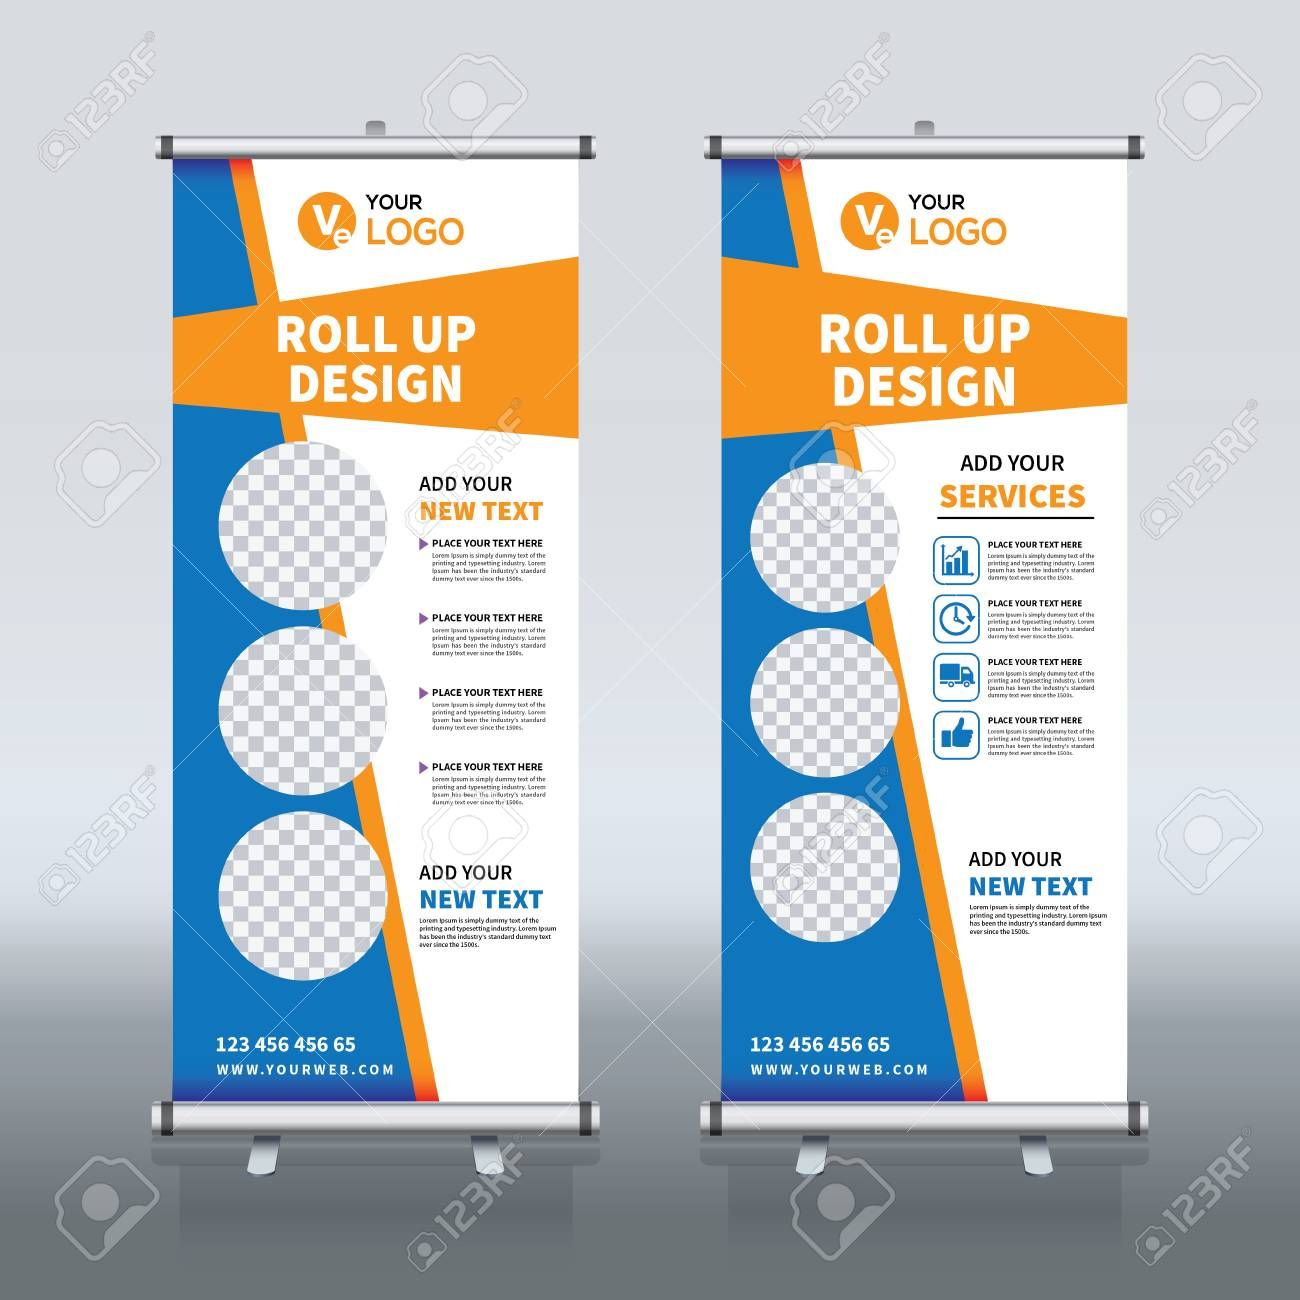 Roll Up Banner Design Template Vertical Abstract Background Pull Up Design Modern X Banner Rectangle Si Banner Template Design Banner Design Pop Up Banner